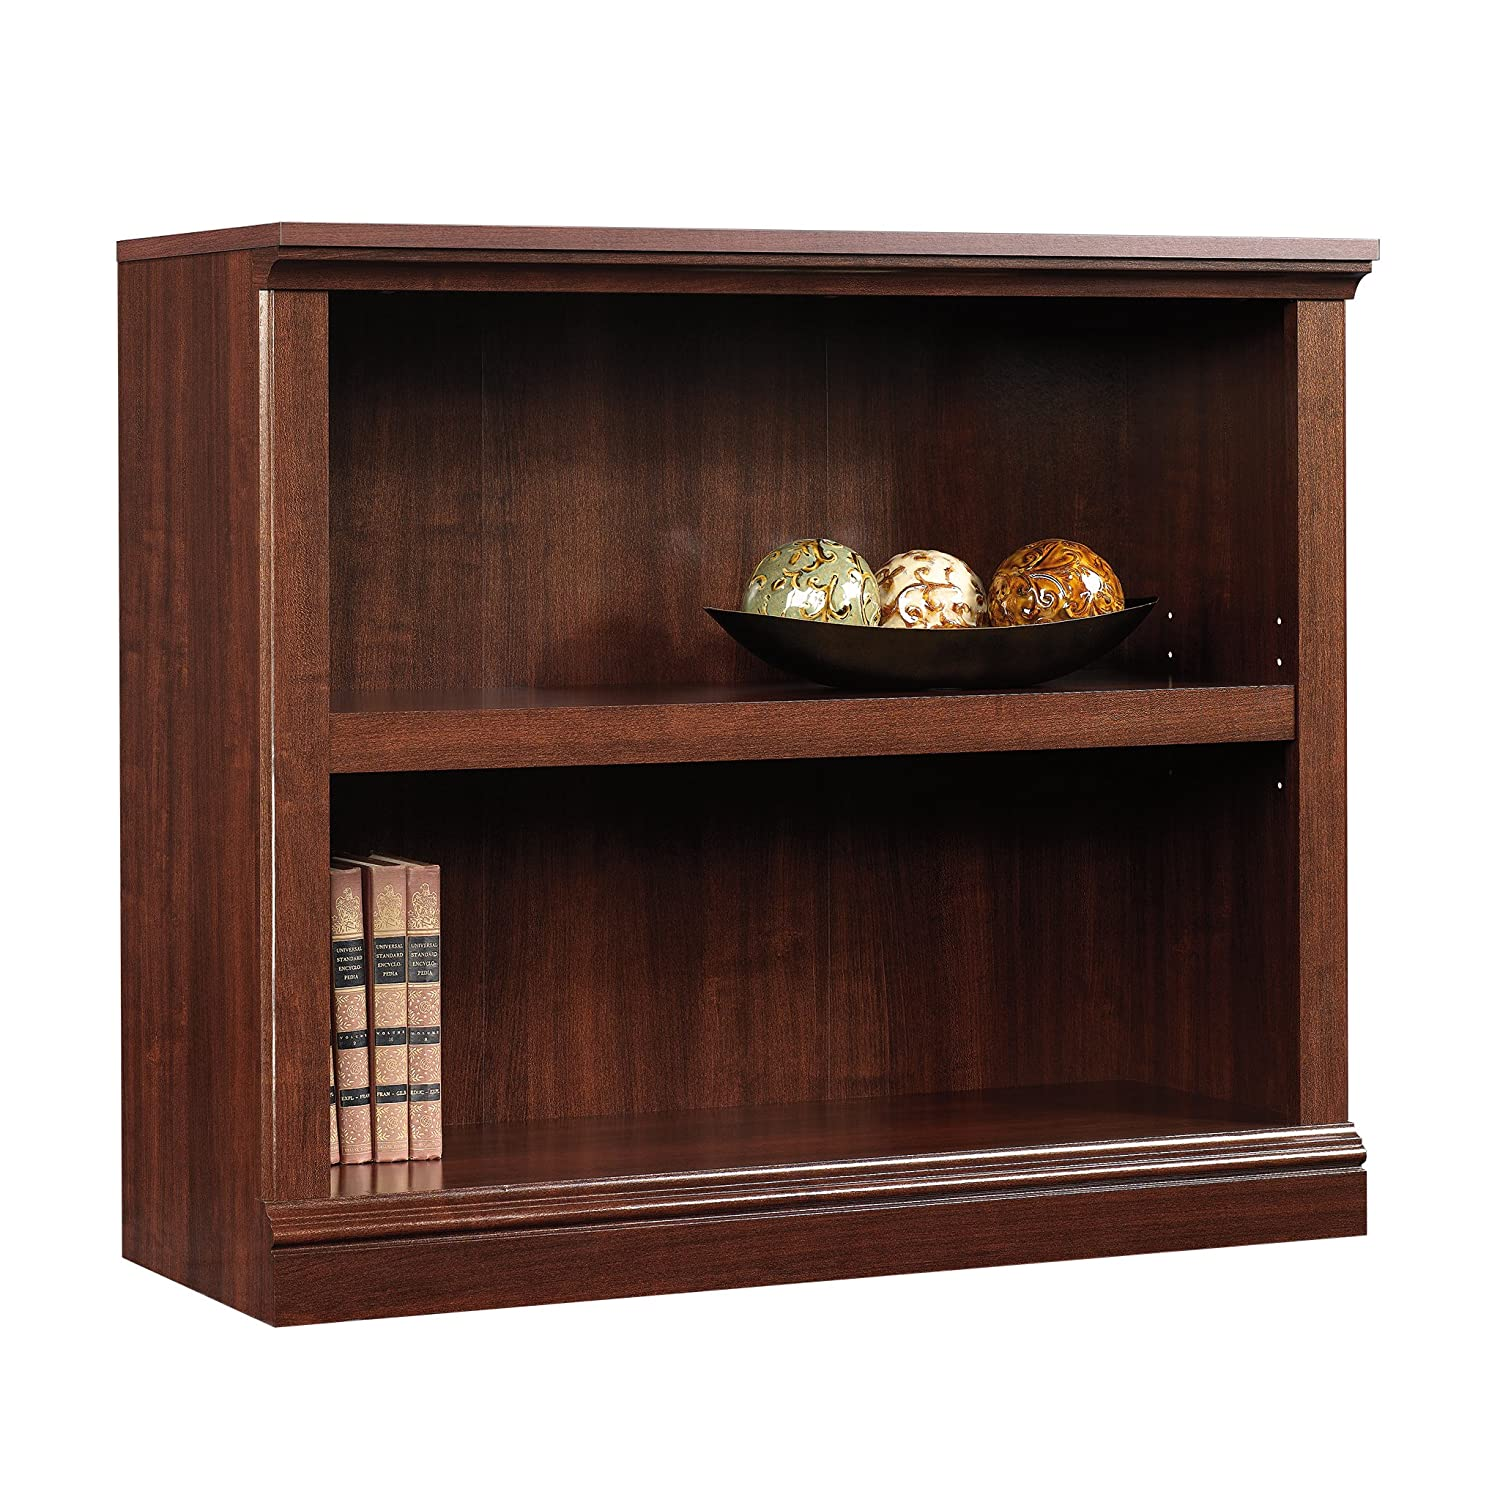 wood cherry storage hand shelf three bookcase second off